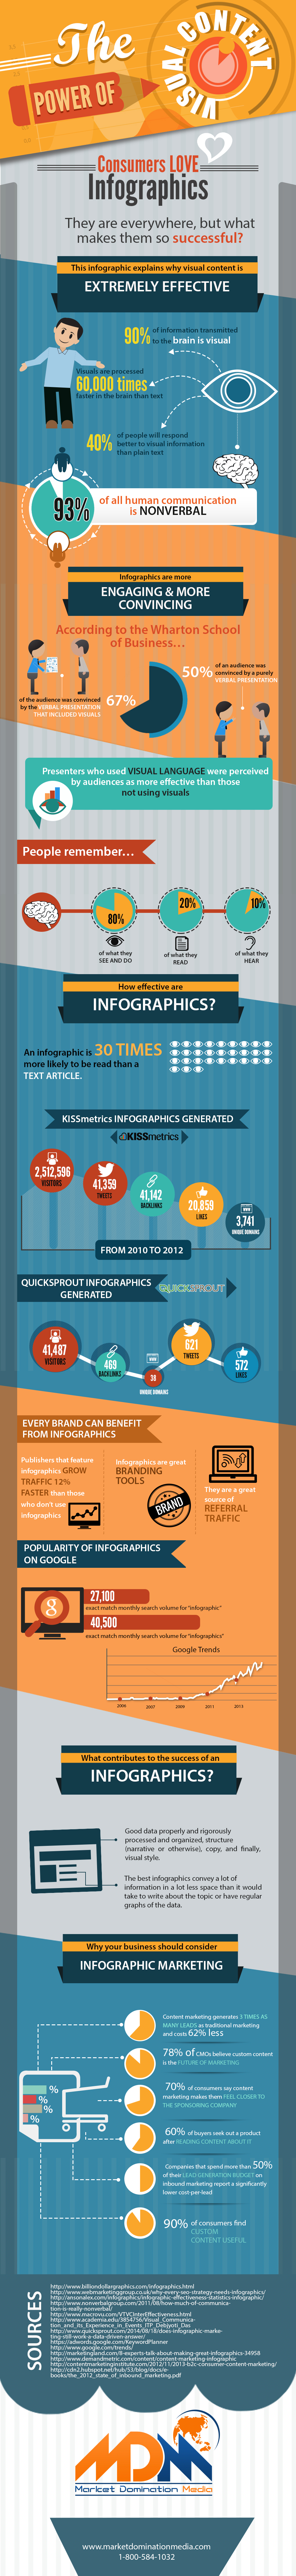 The-Power-of-Visual-Content-infographic